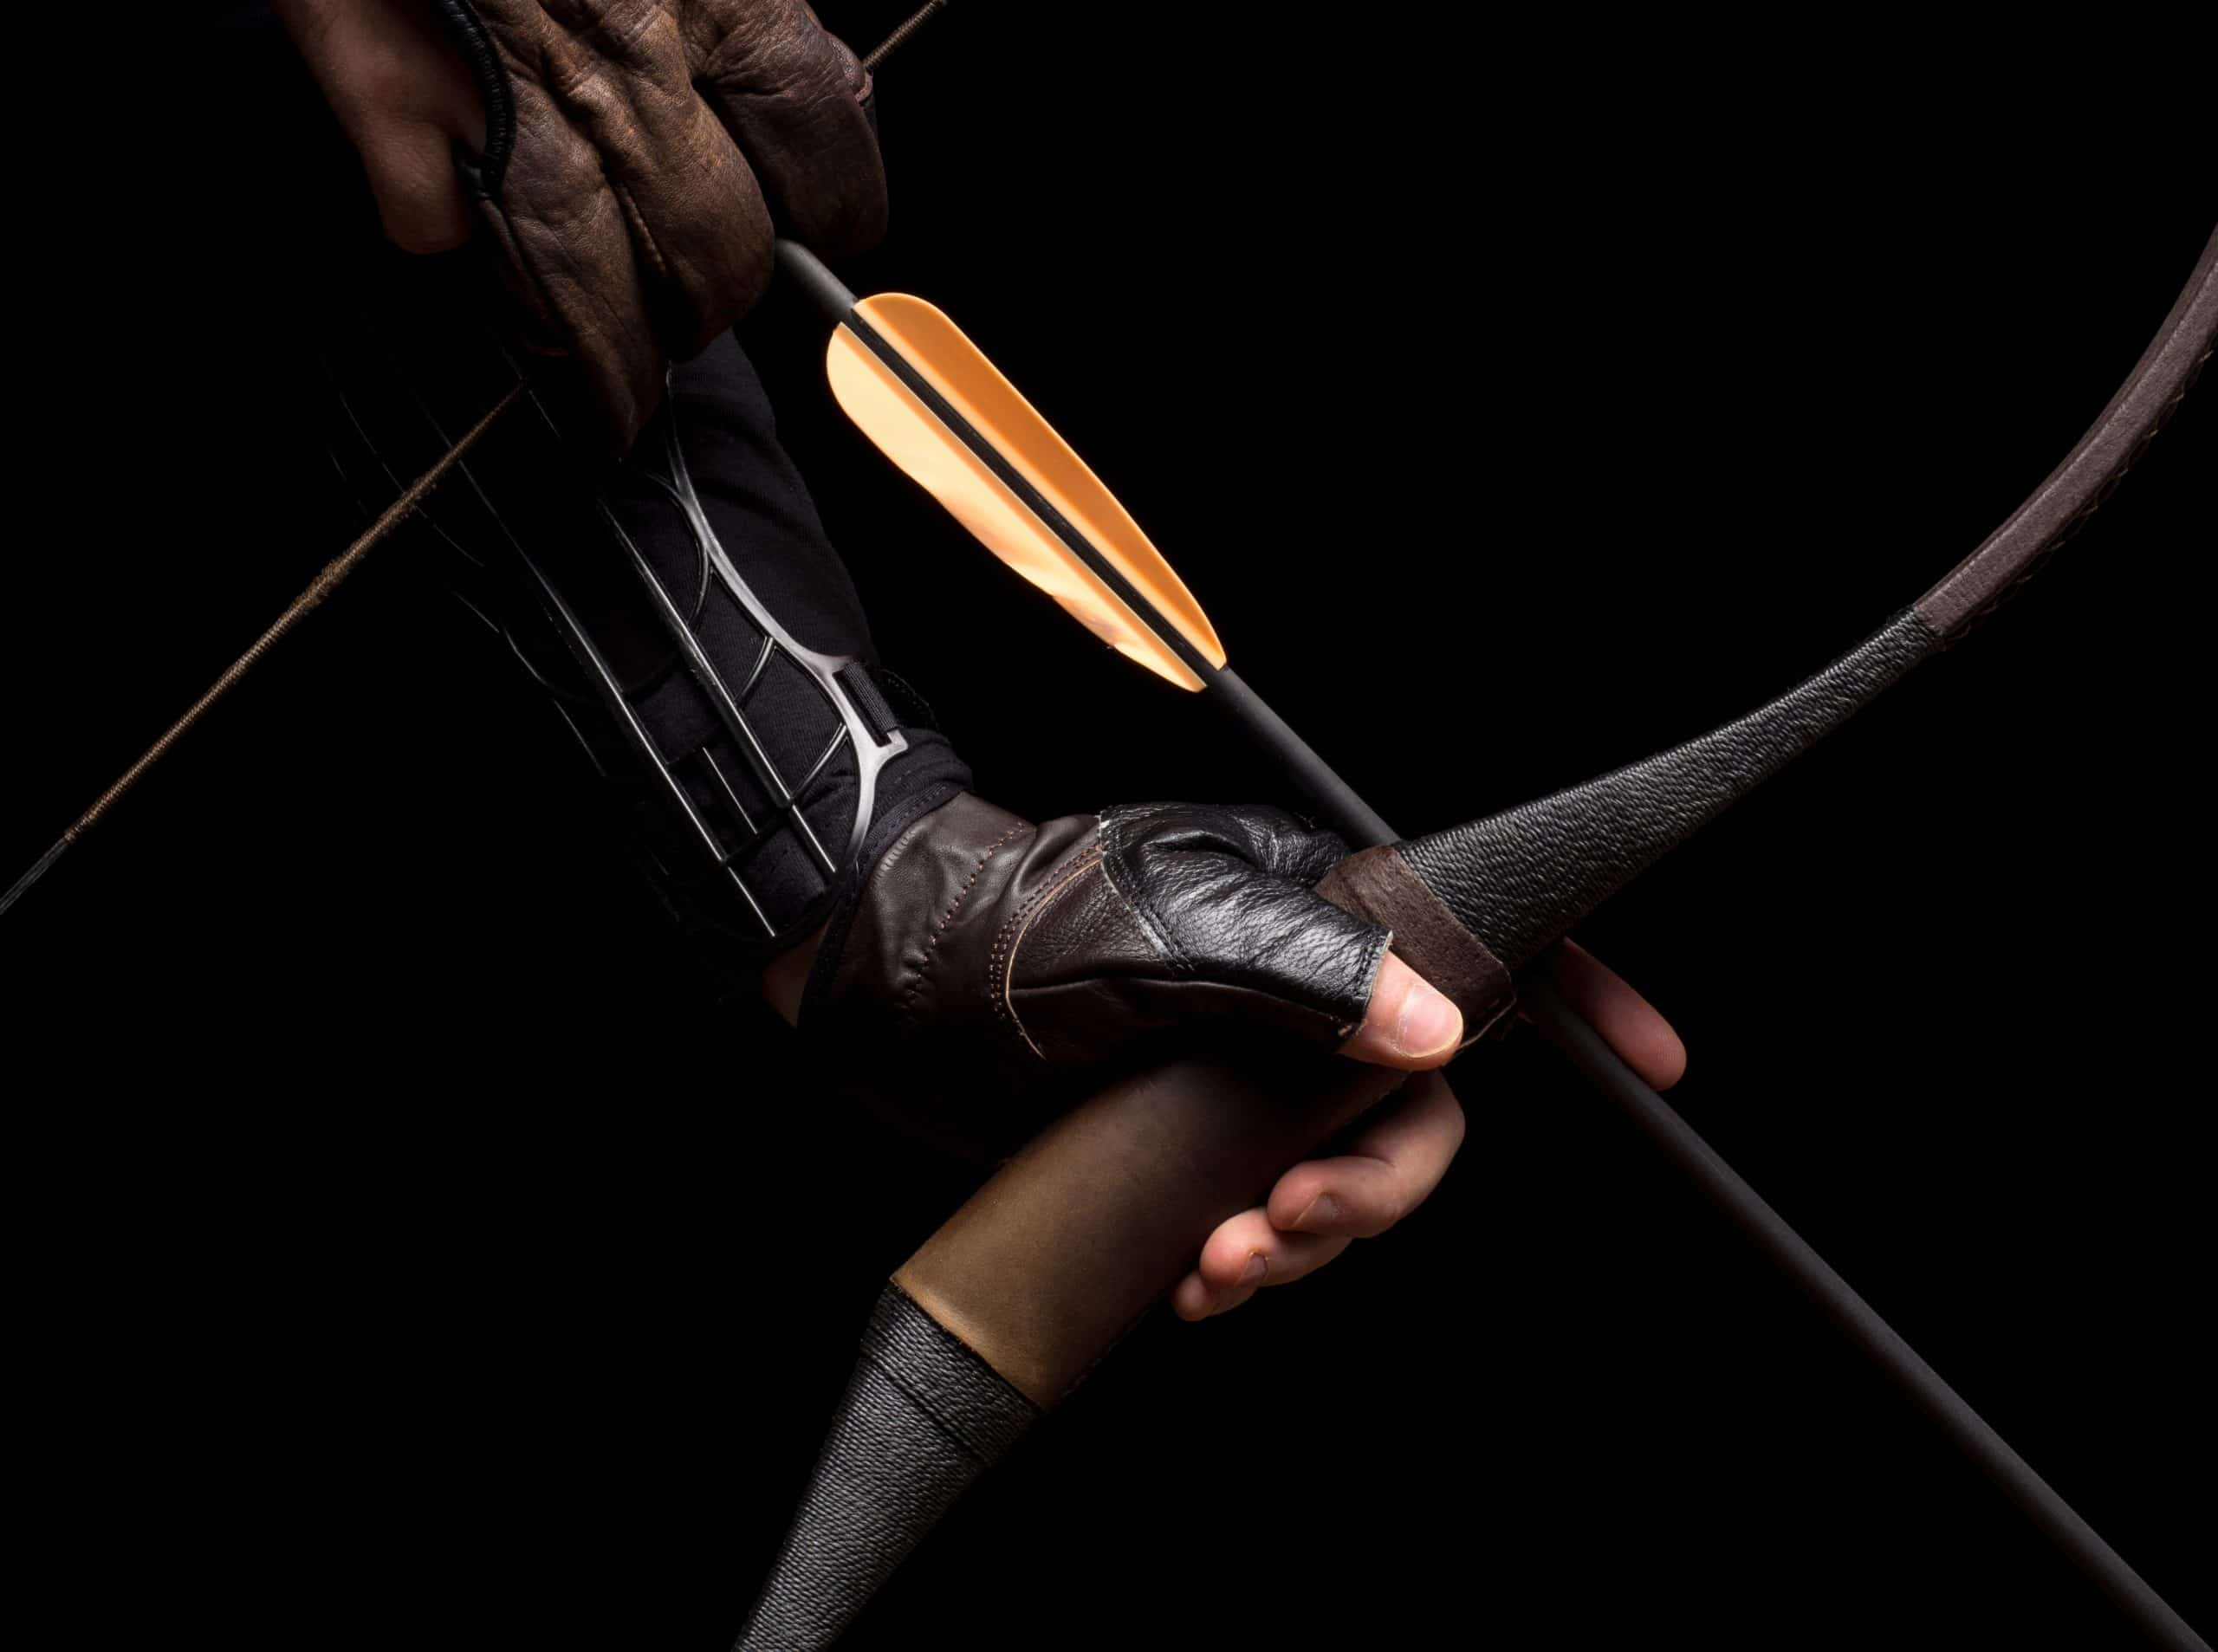 8 Best Archery Gloves – Reviews and Buyer's Guide